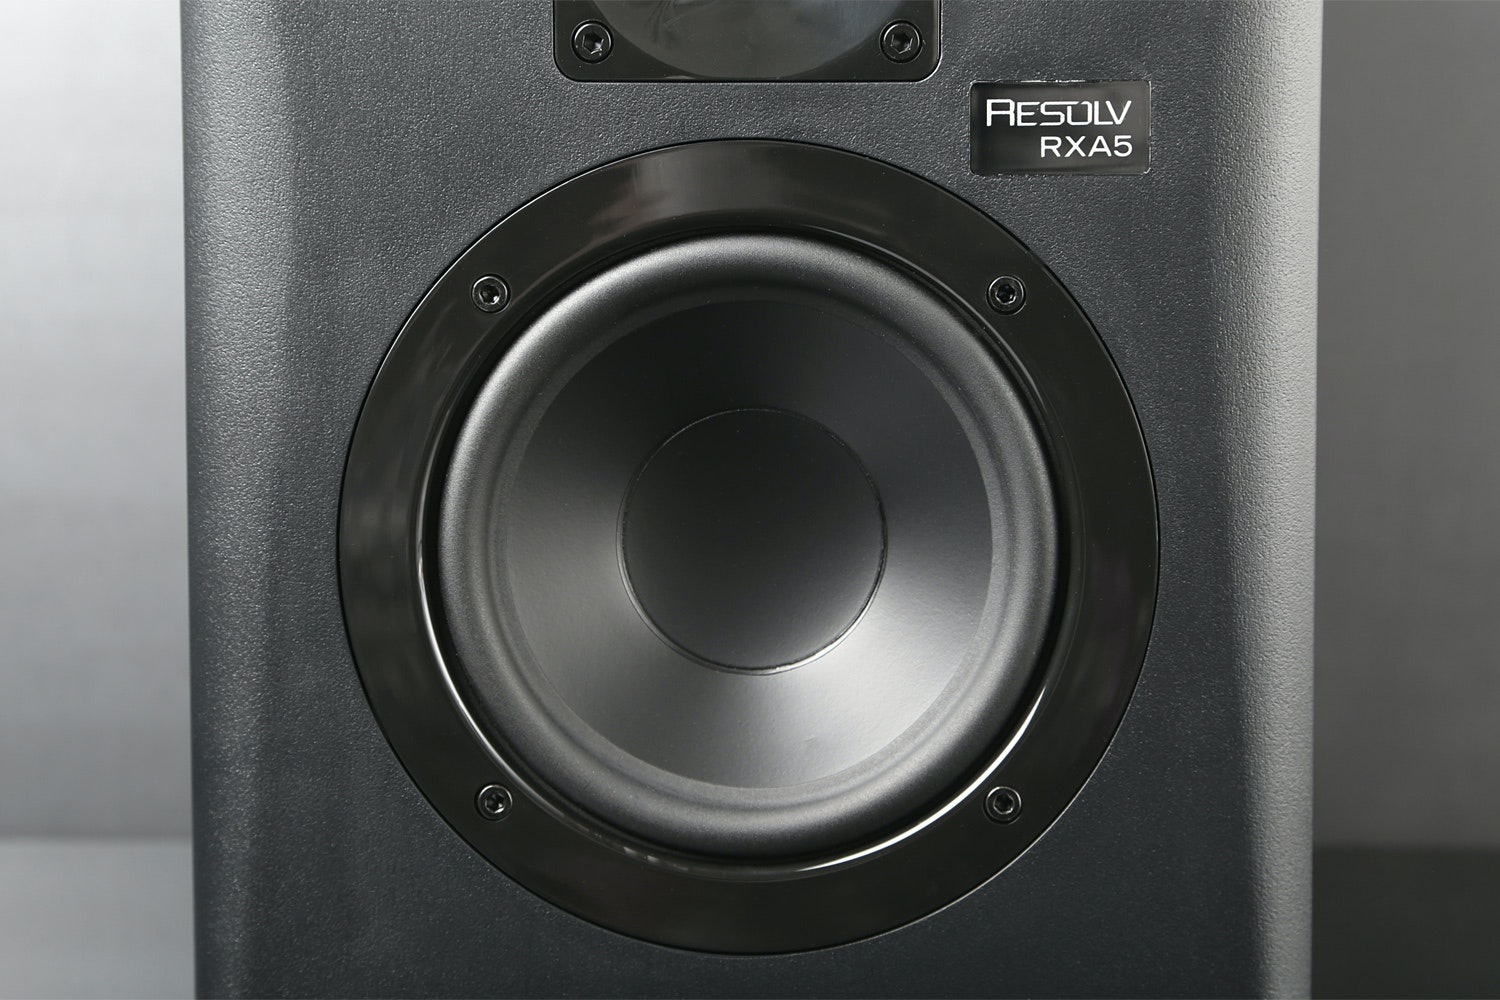 Samson Resolv RXA5 Reference Monitor